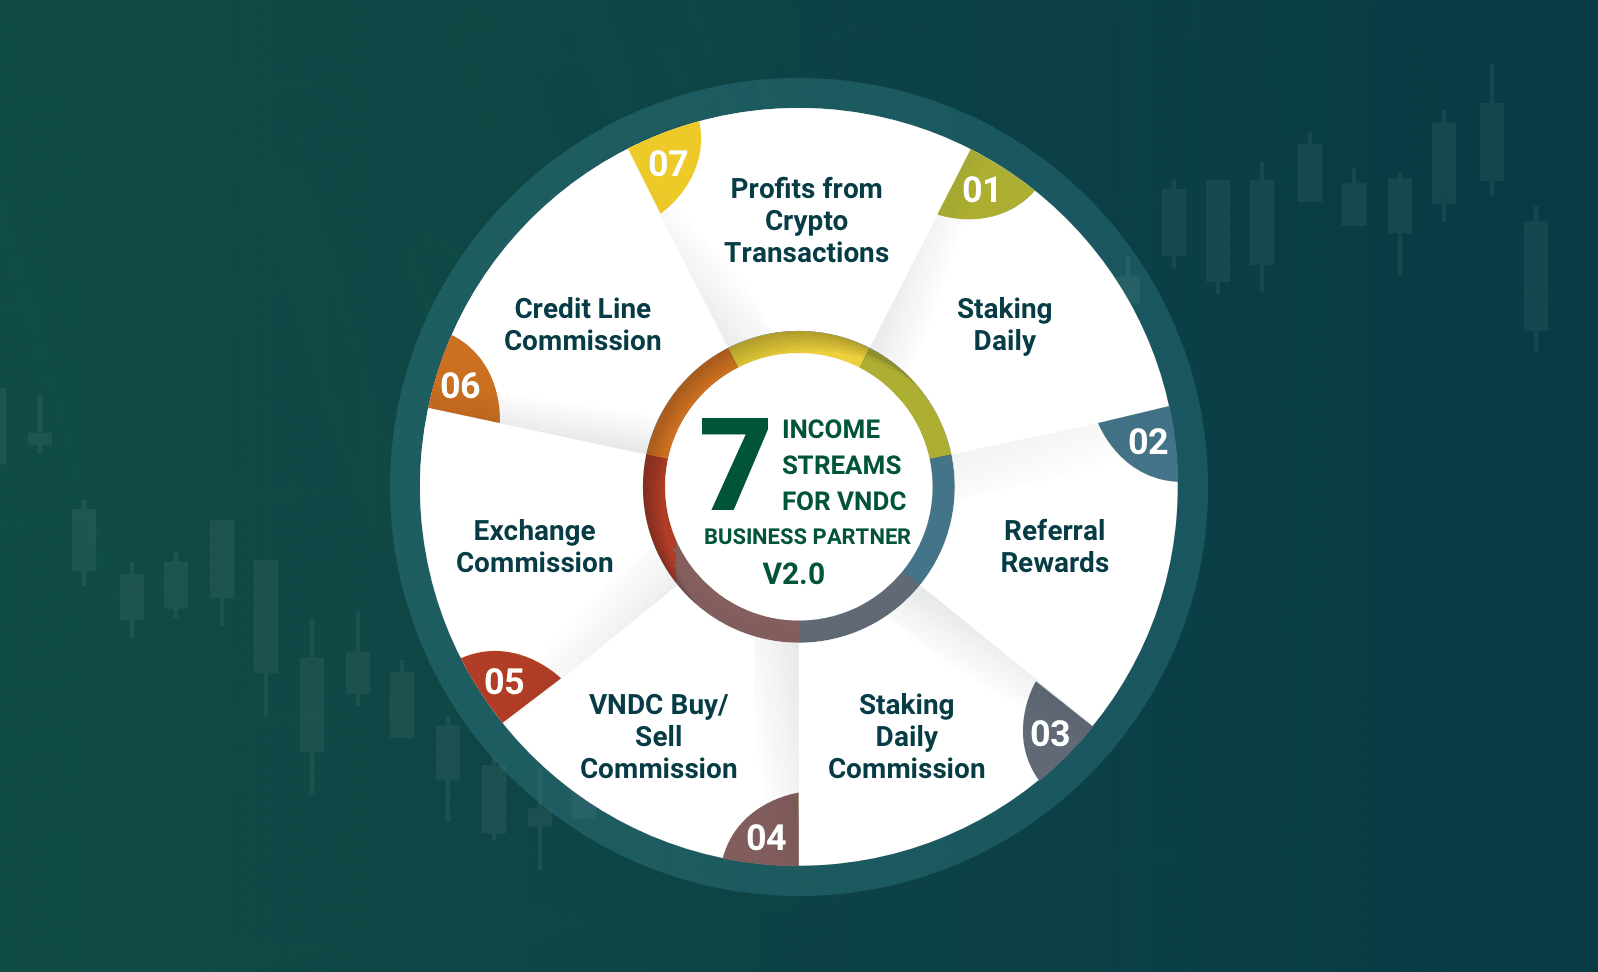 7 income streams for VNDC Business Partner V2.0